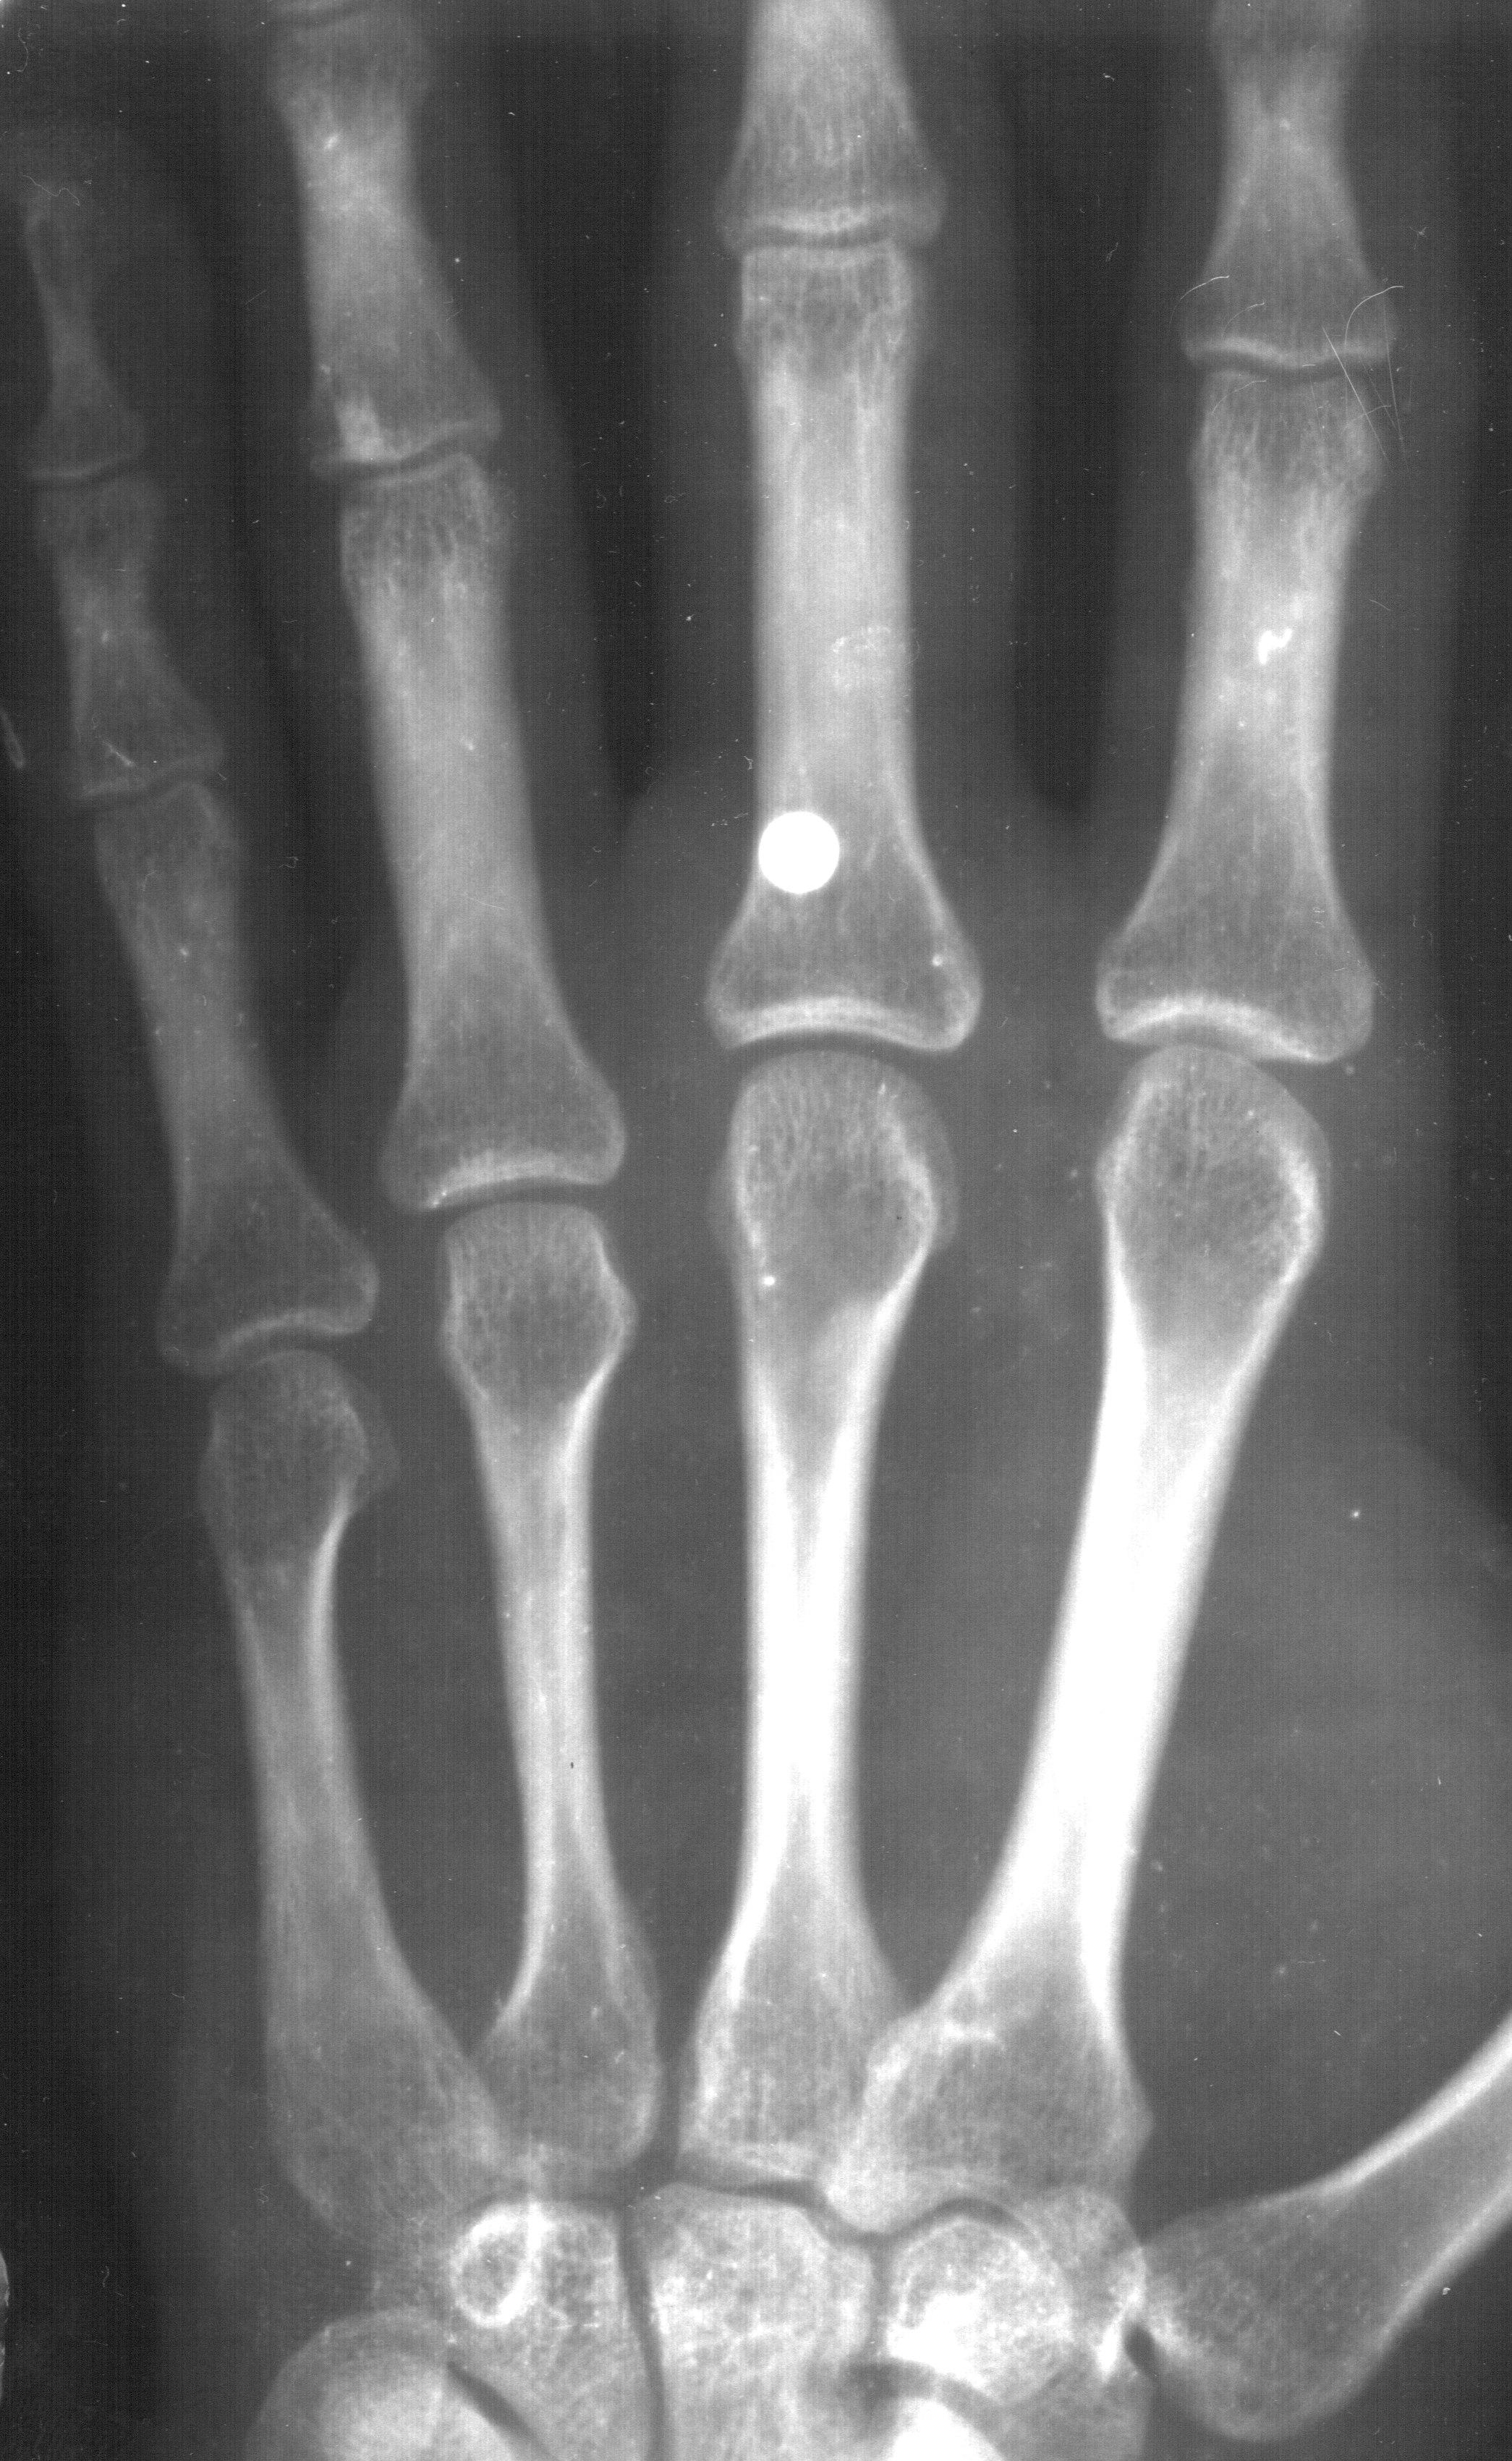 File:Steel BB in hand - X-ray.jpg - Wikimedia Commons